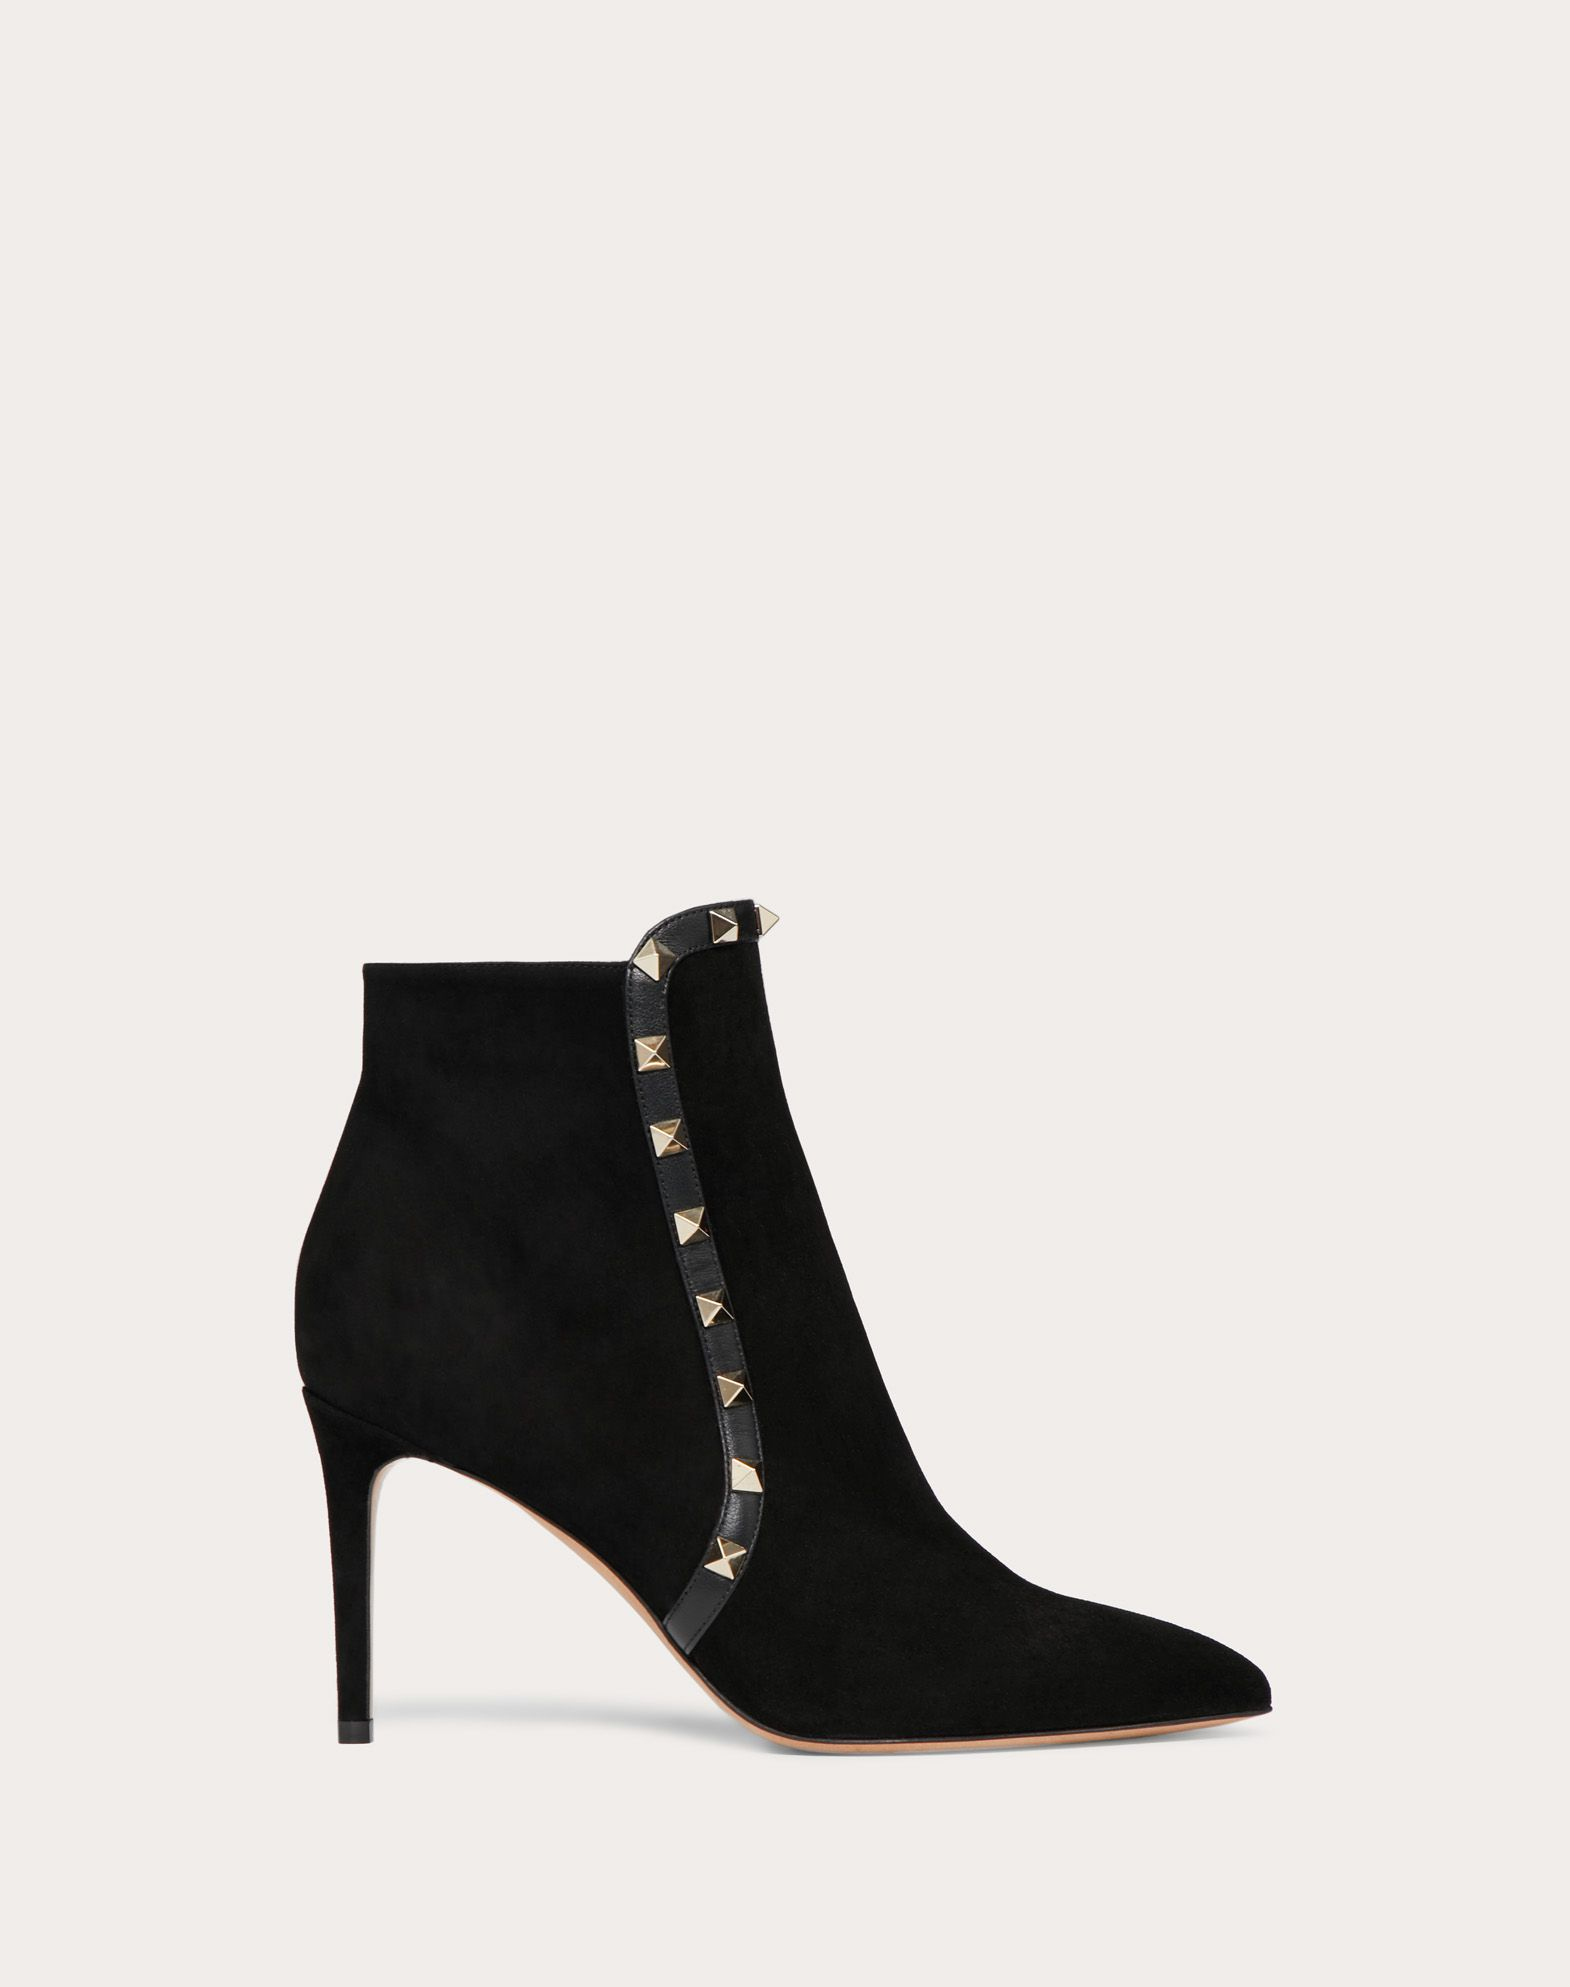 Bottines Rockstud en daim. Talon : 85 mm